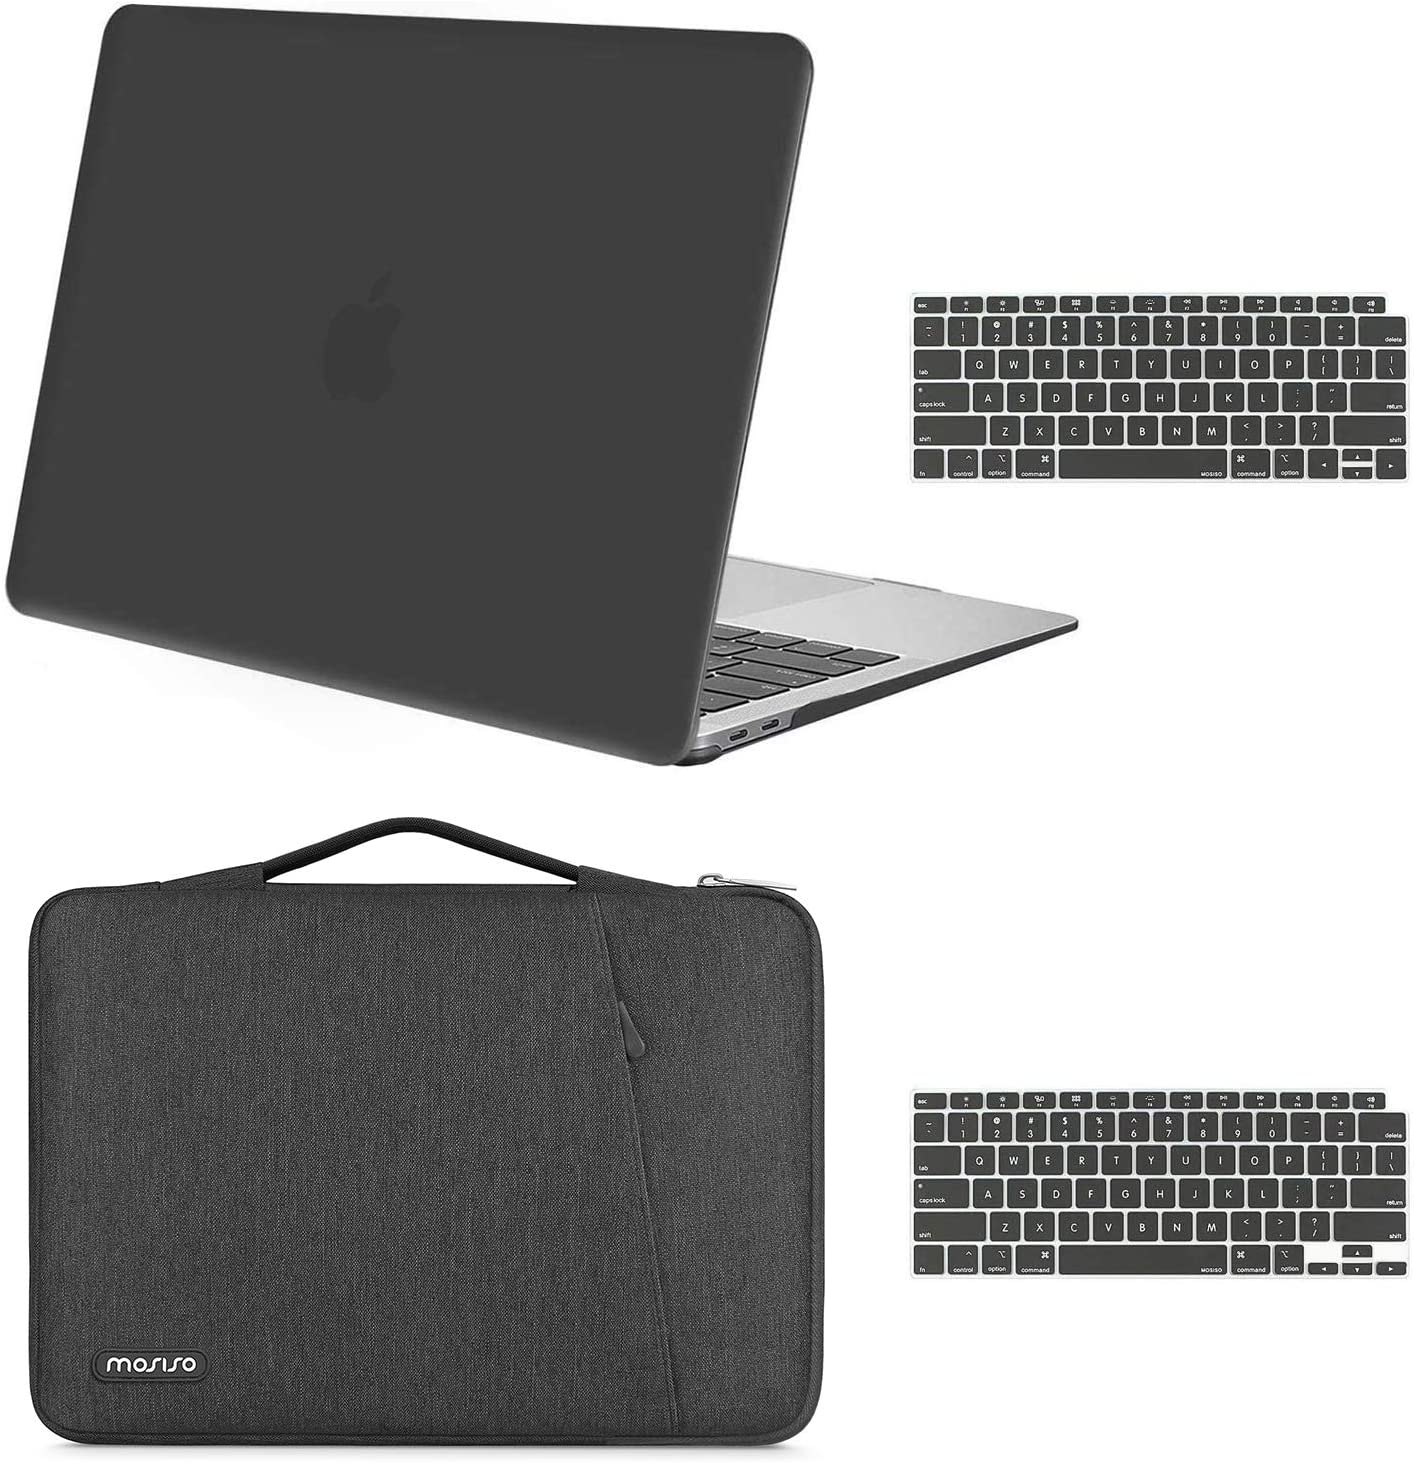 MOSISO MacBook Air 13 inch Case 2020 2019 2018 Release A2179 A1932, Plastic Hard Shell Case & 360 Protective Carrying Sleeve Bag & Keyboard Cover Compatible with MacBook Air 13 inch Retina, Space Gray